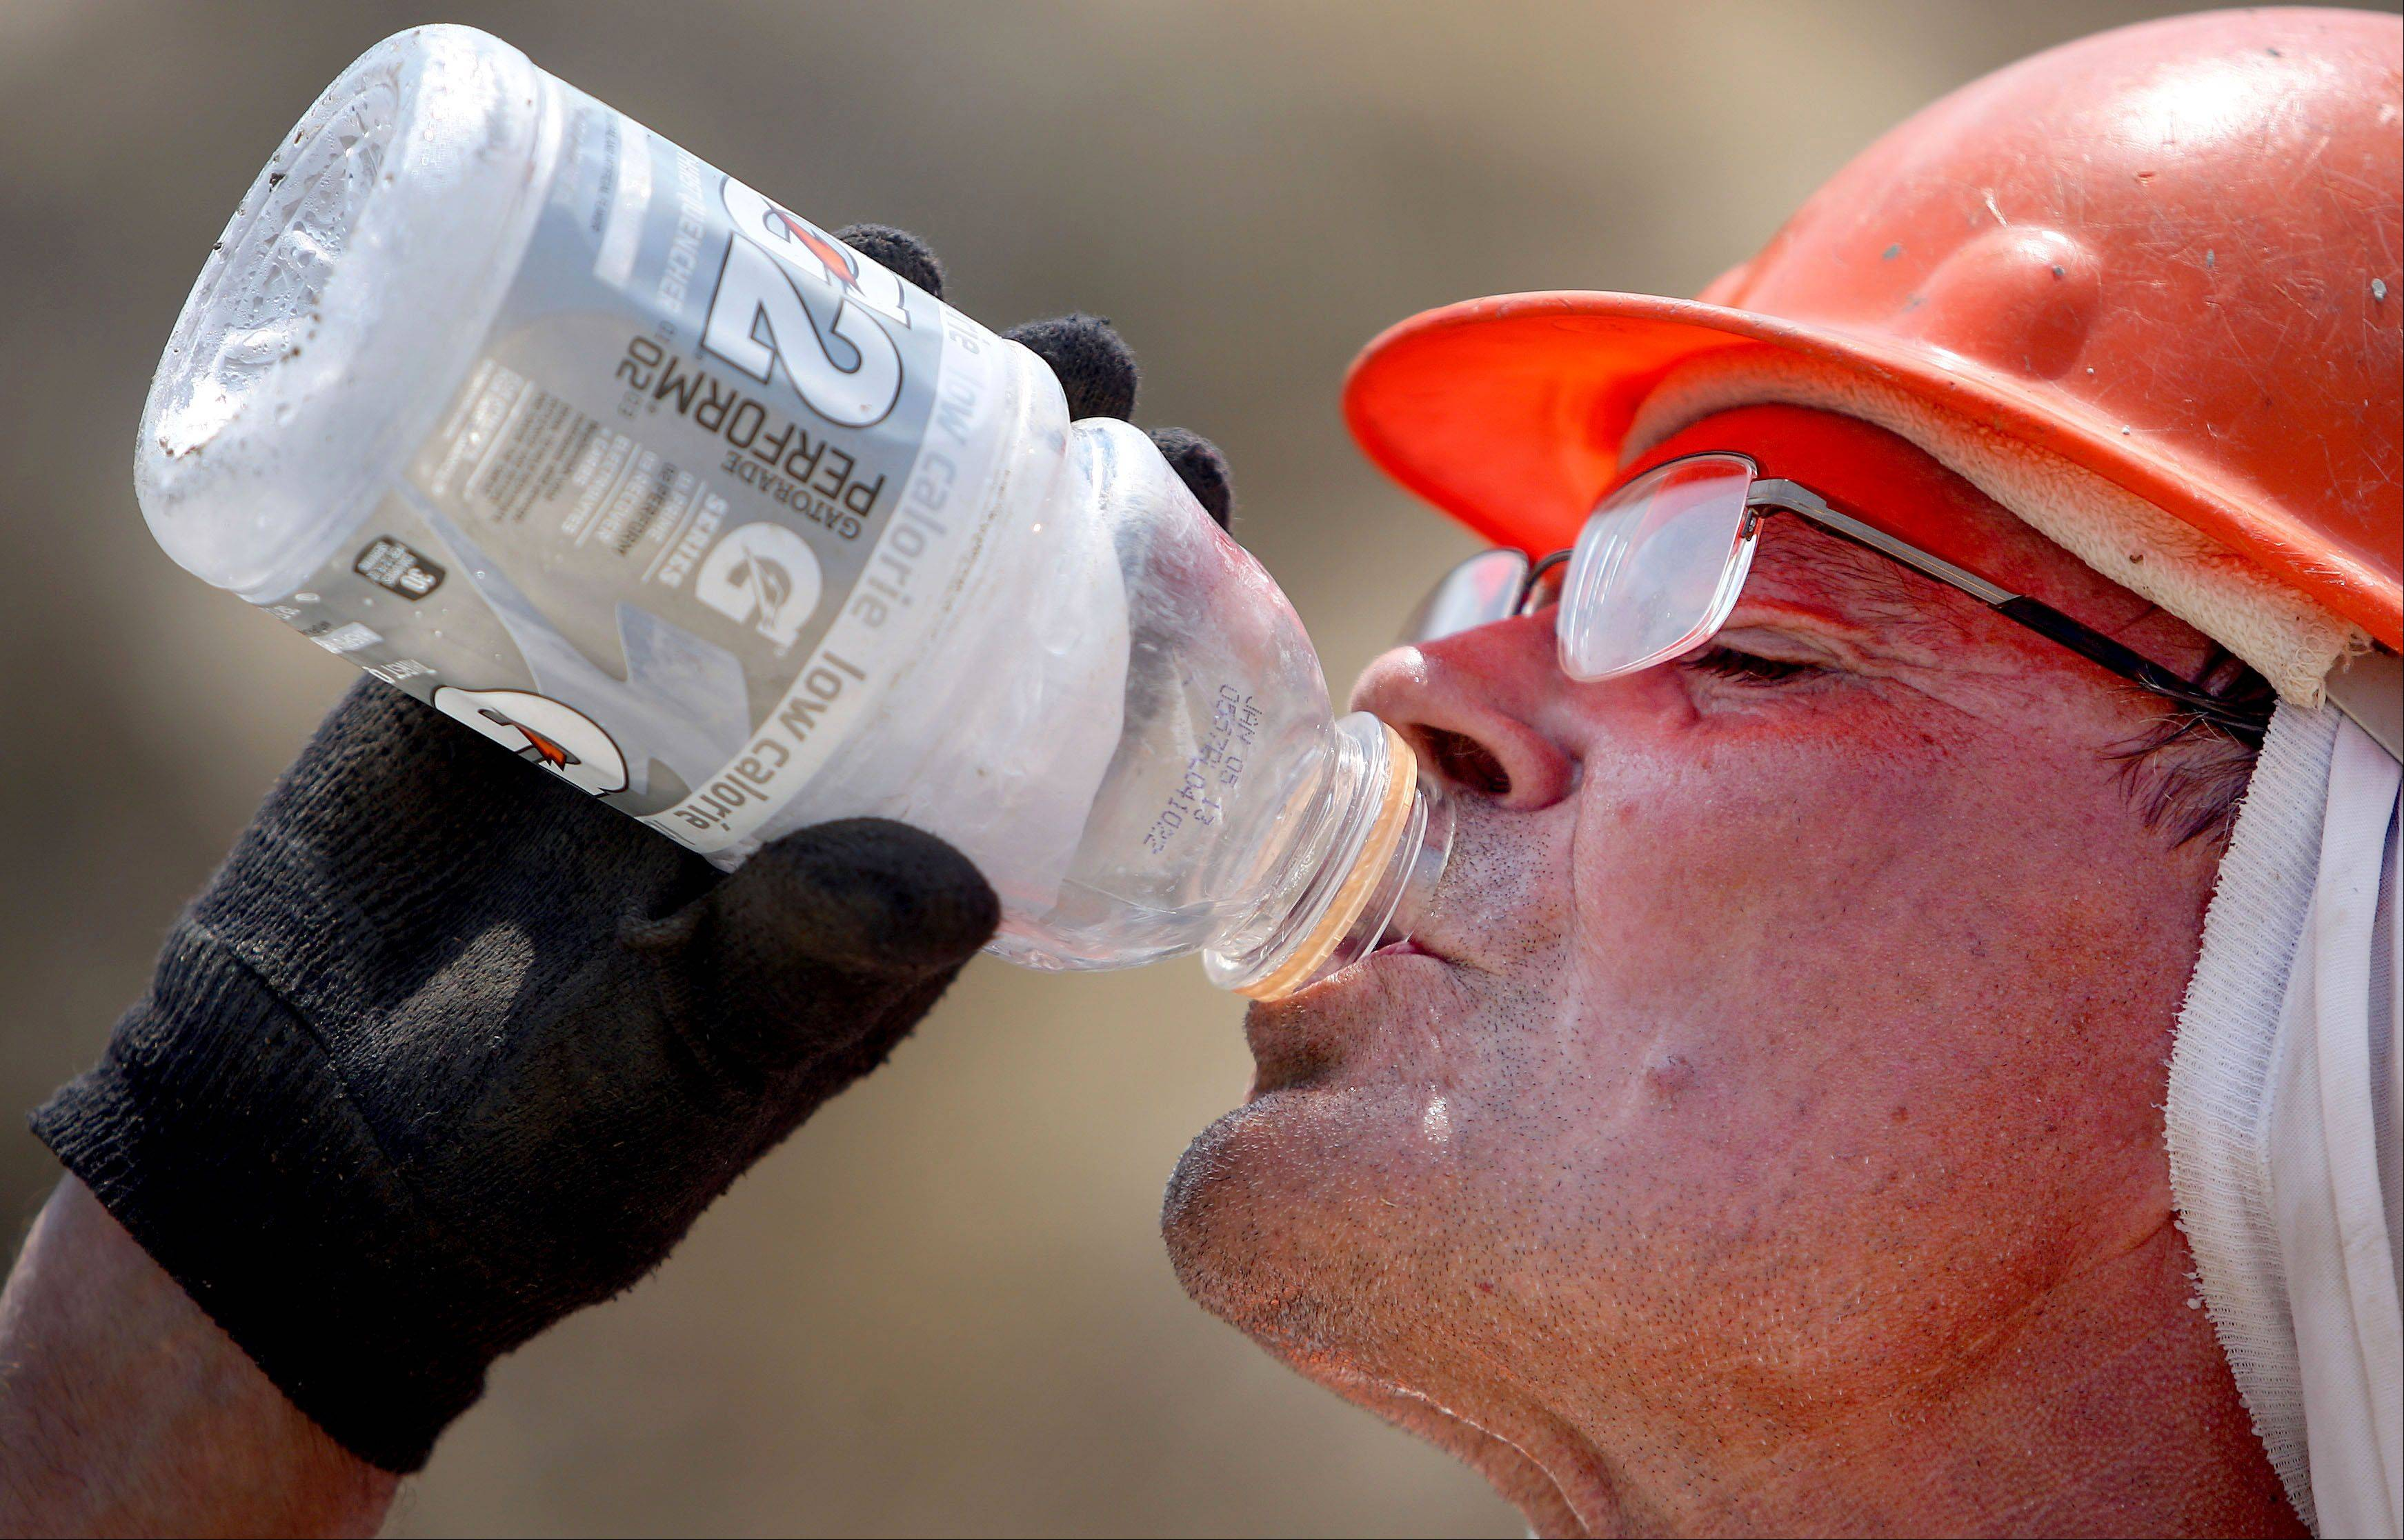 "Construction worker Bruce Burgett rehydrates after a long day in the heat while working on road construction on Route 176 near Wauconda Thursday. ""We started at 6 a.m. to beat the heat,"" said Burgett."